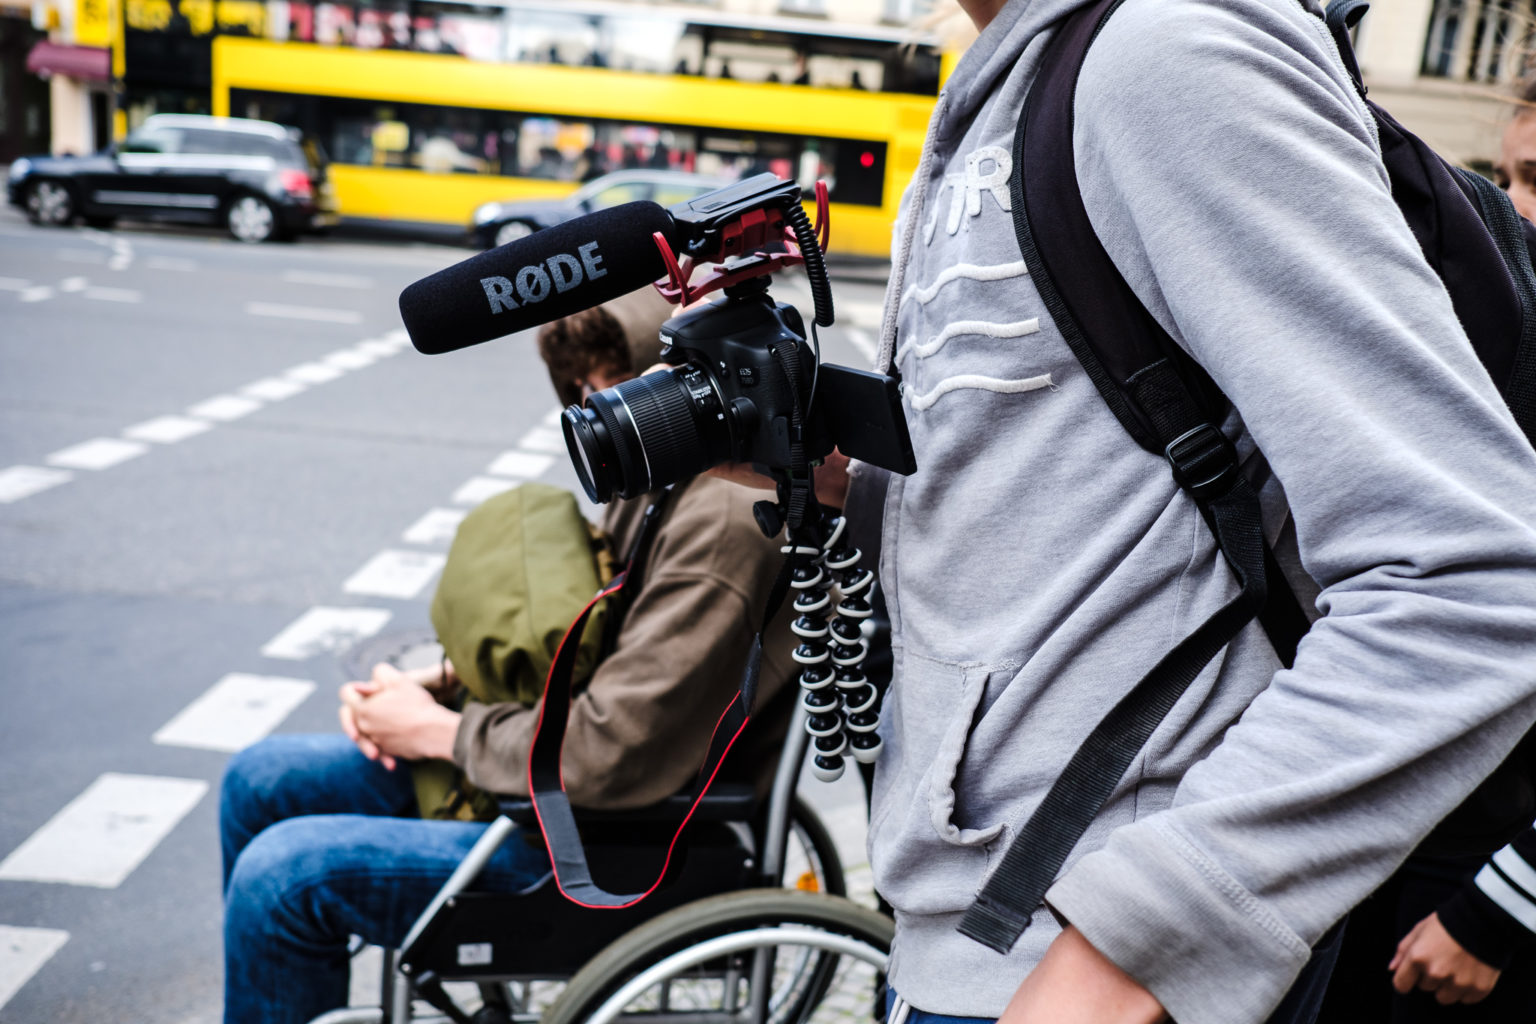 A person with a video camera. In the background a person in a wheelchair